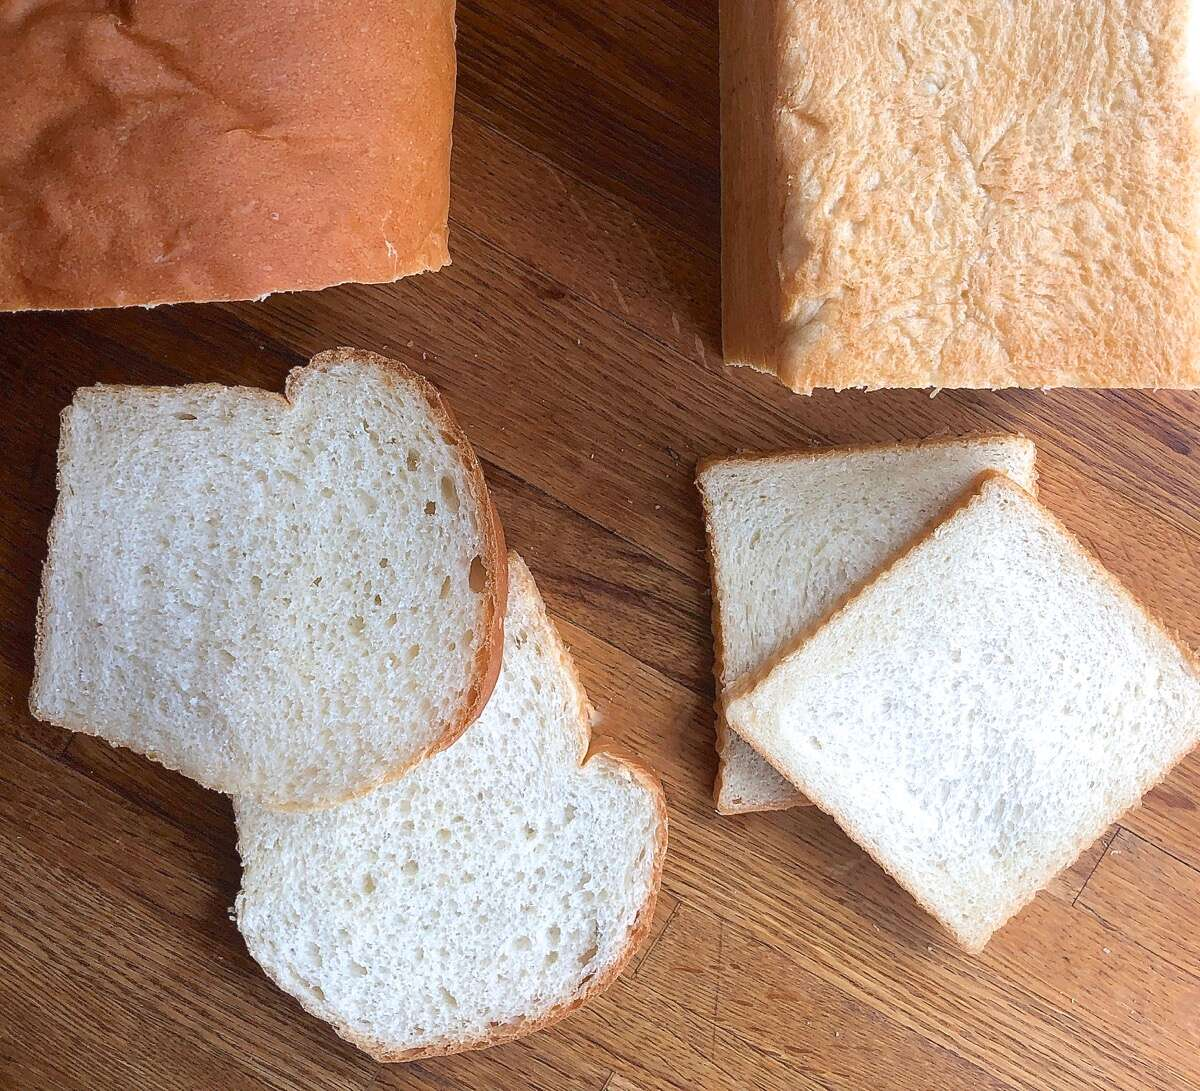 Comparison of slices of bread from two pans: standard loaf pan and pain de mie pan